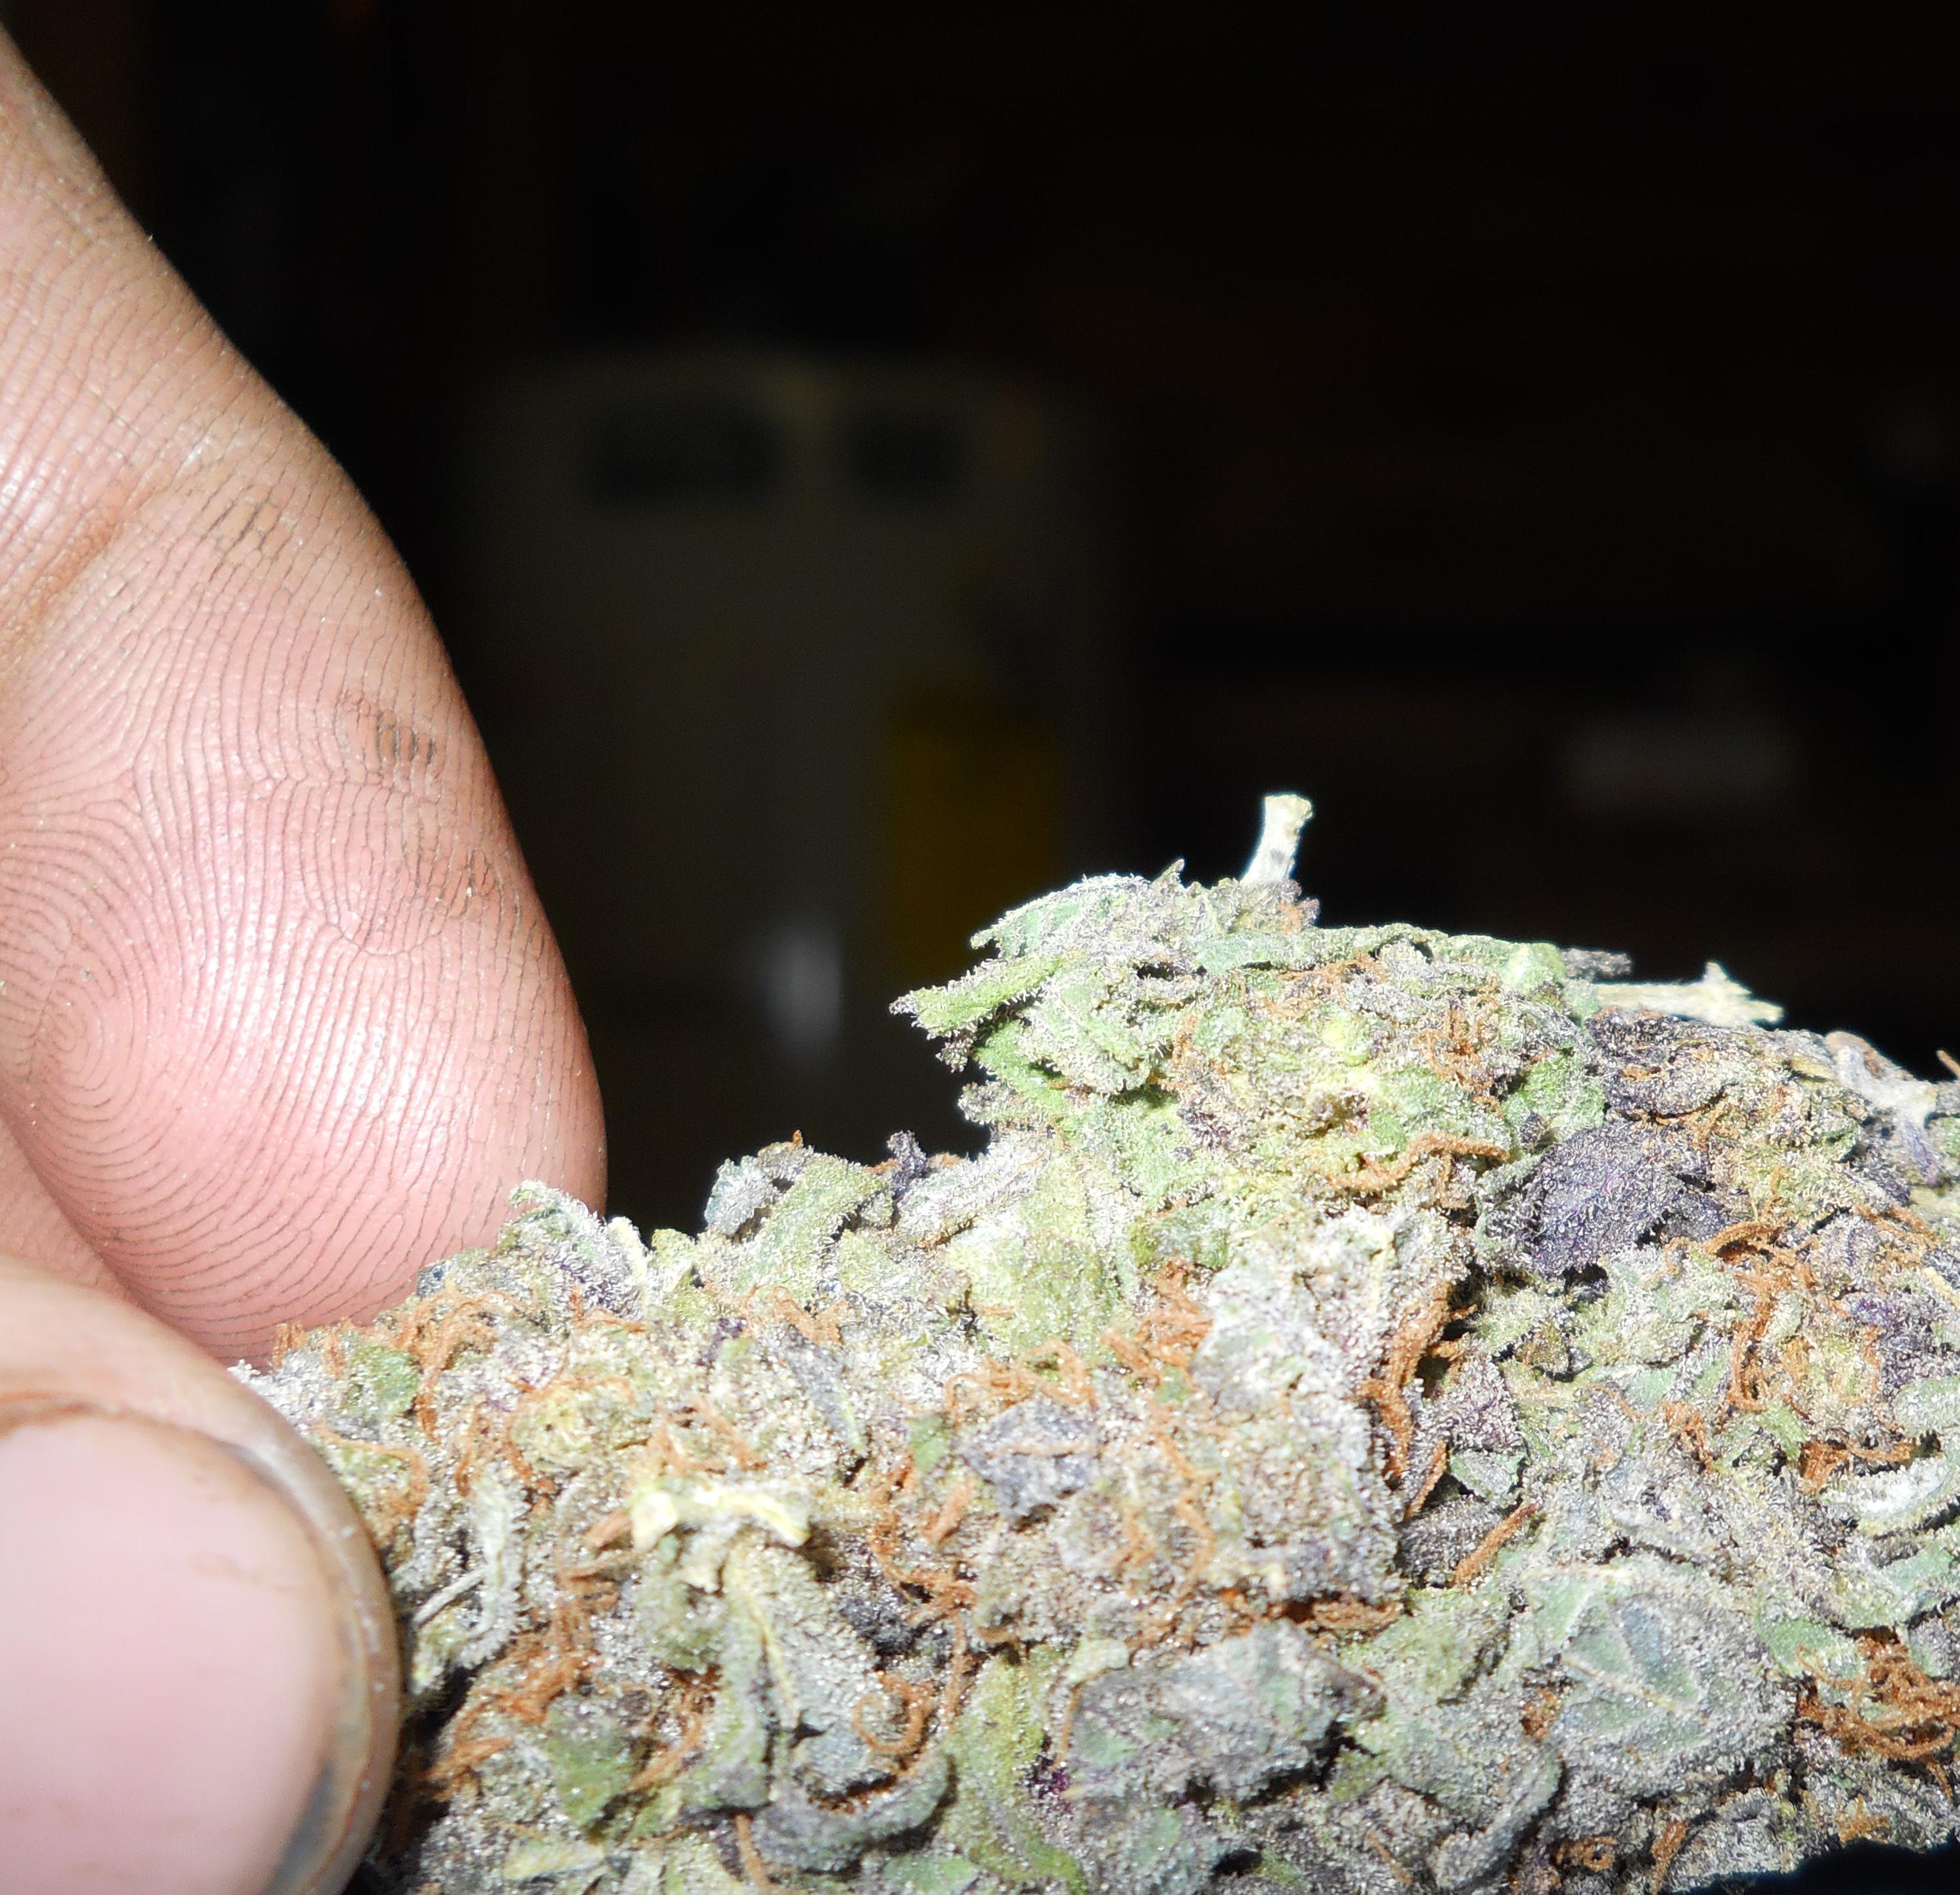 yellow-weed-strains